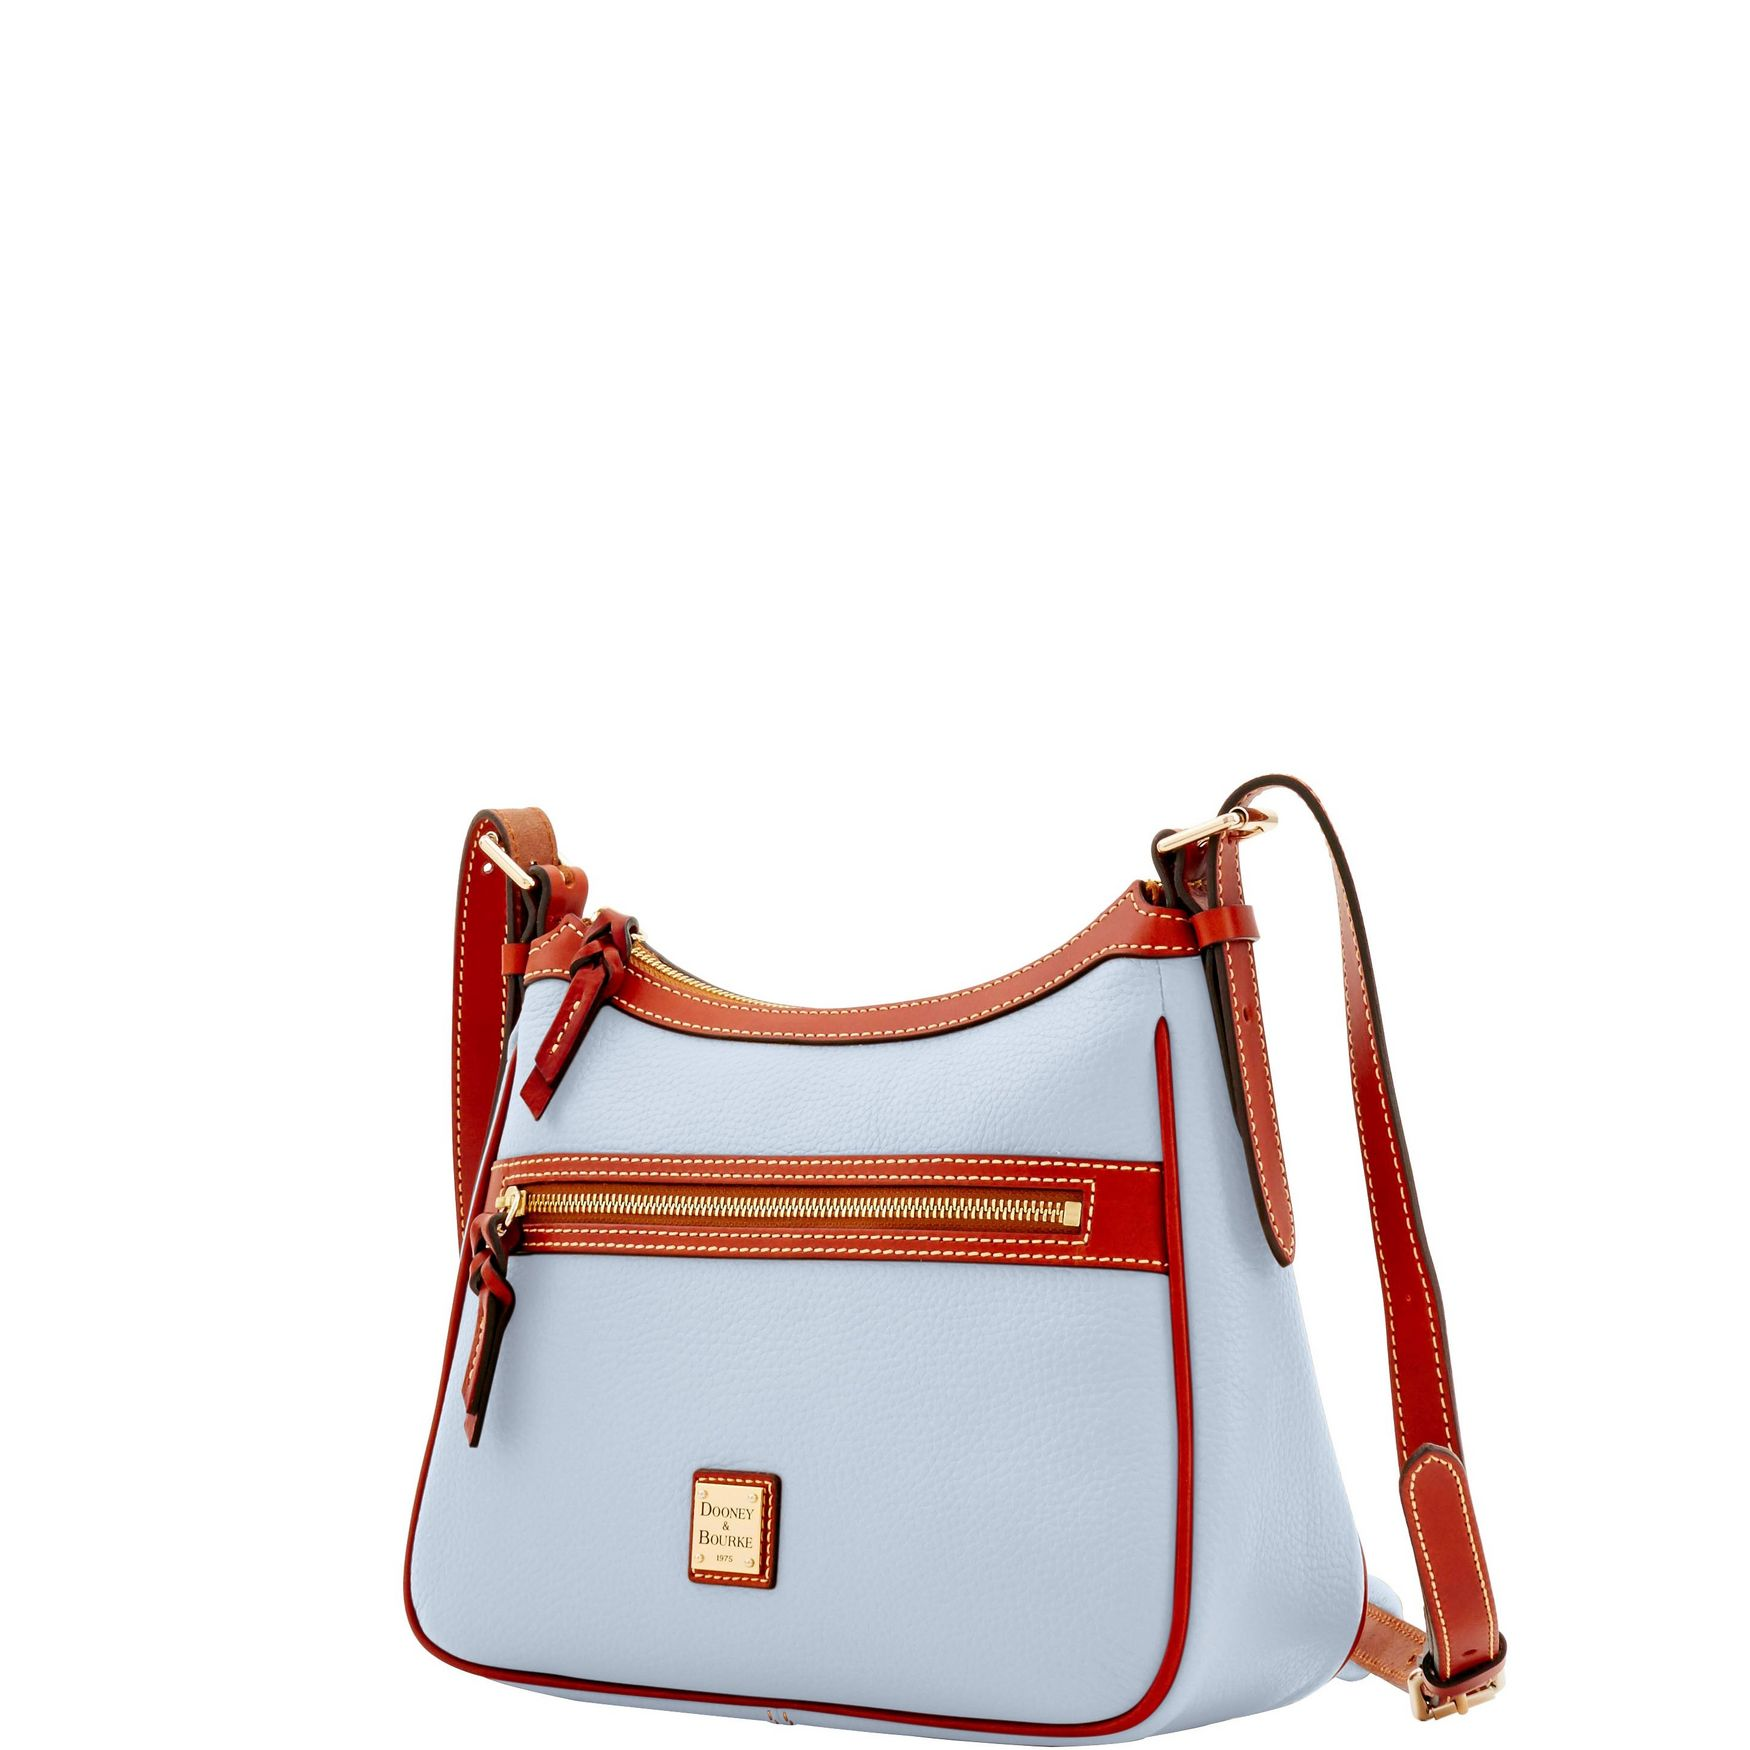 Dooney /& Bourke Pebble Grain Piper